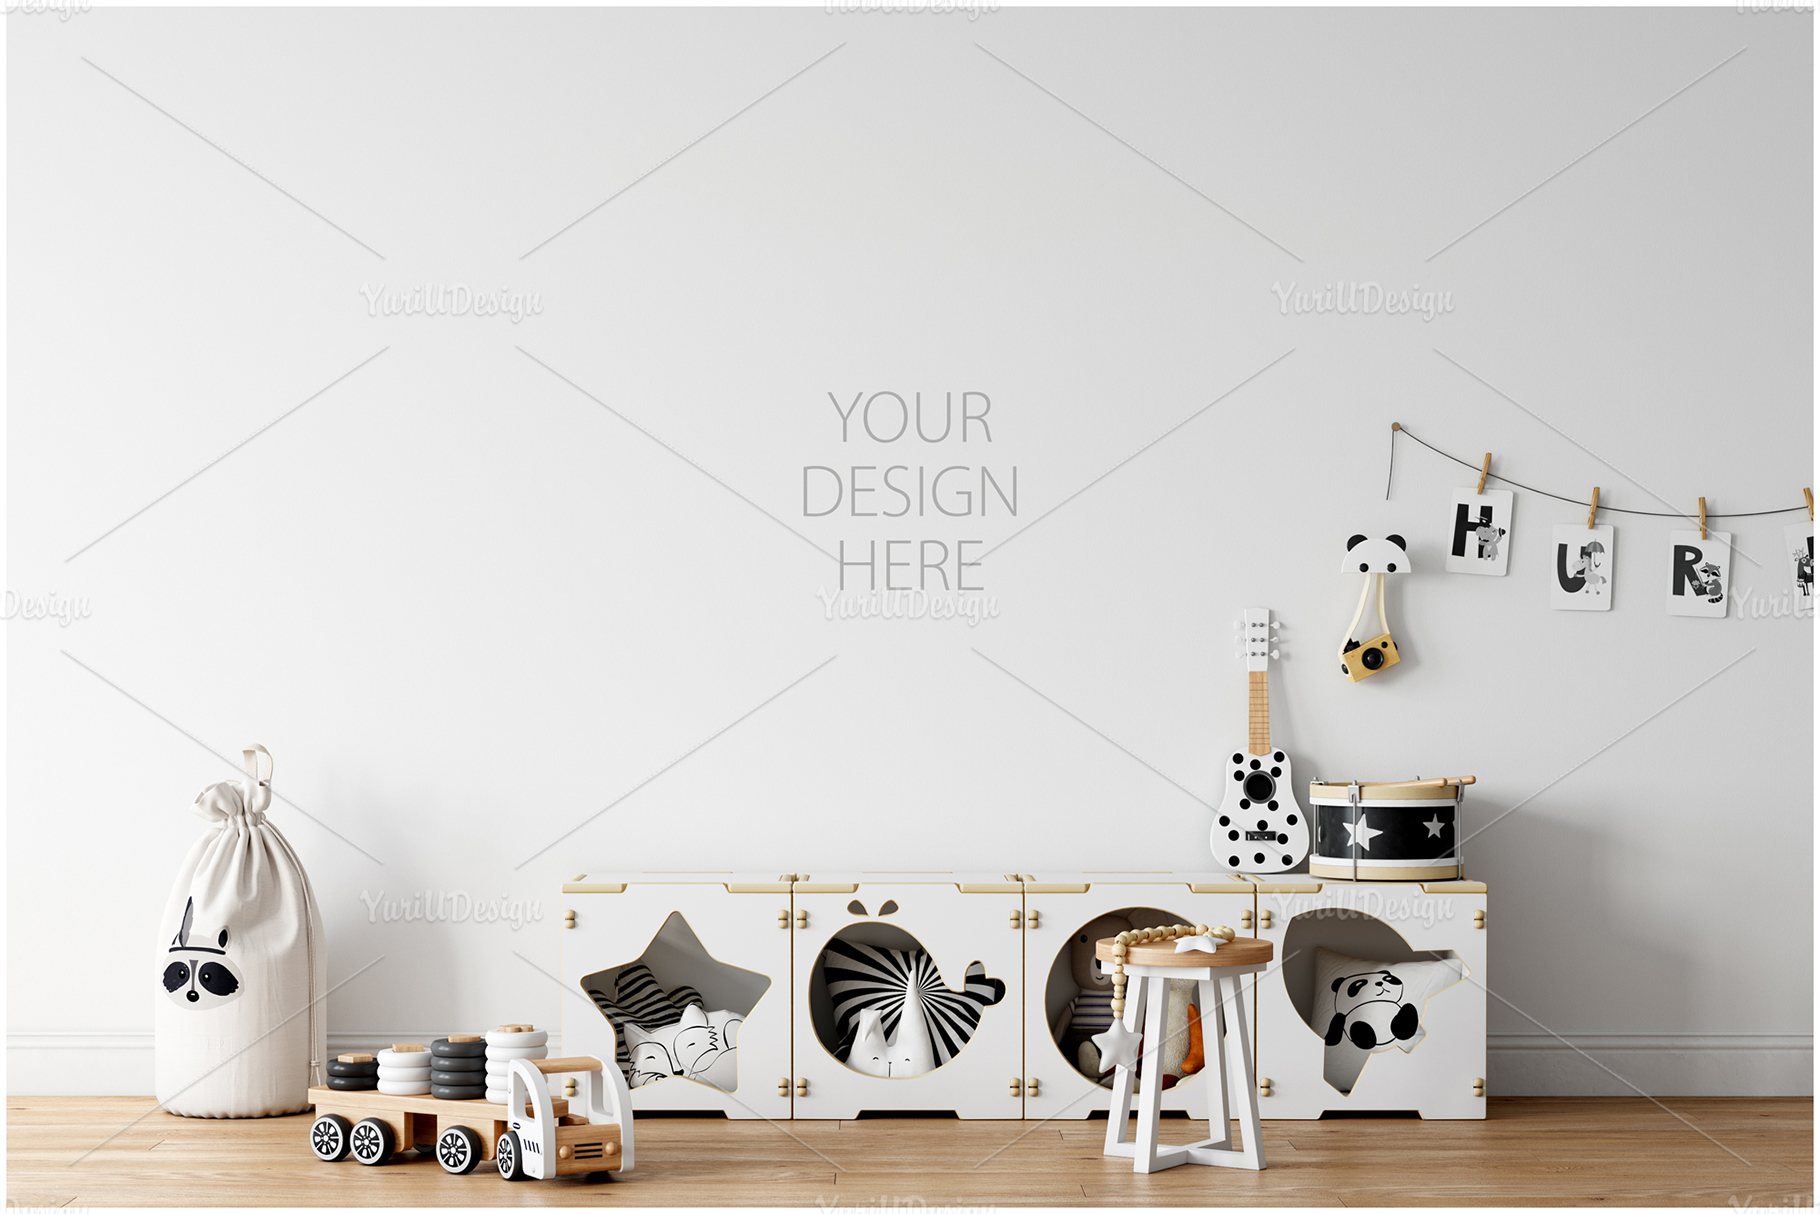 Kids Frames & Wall Mockup Bundle - 5 example image 15